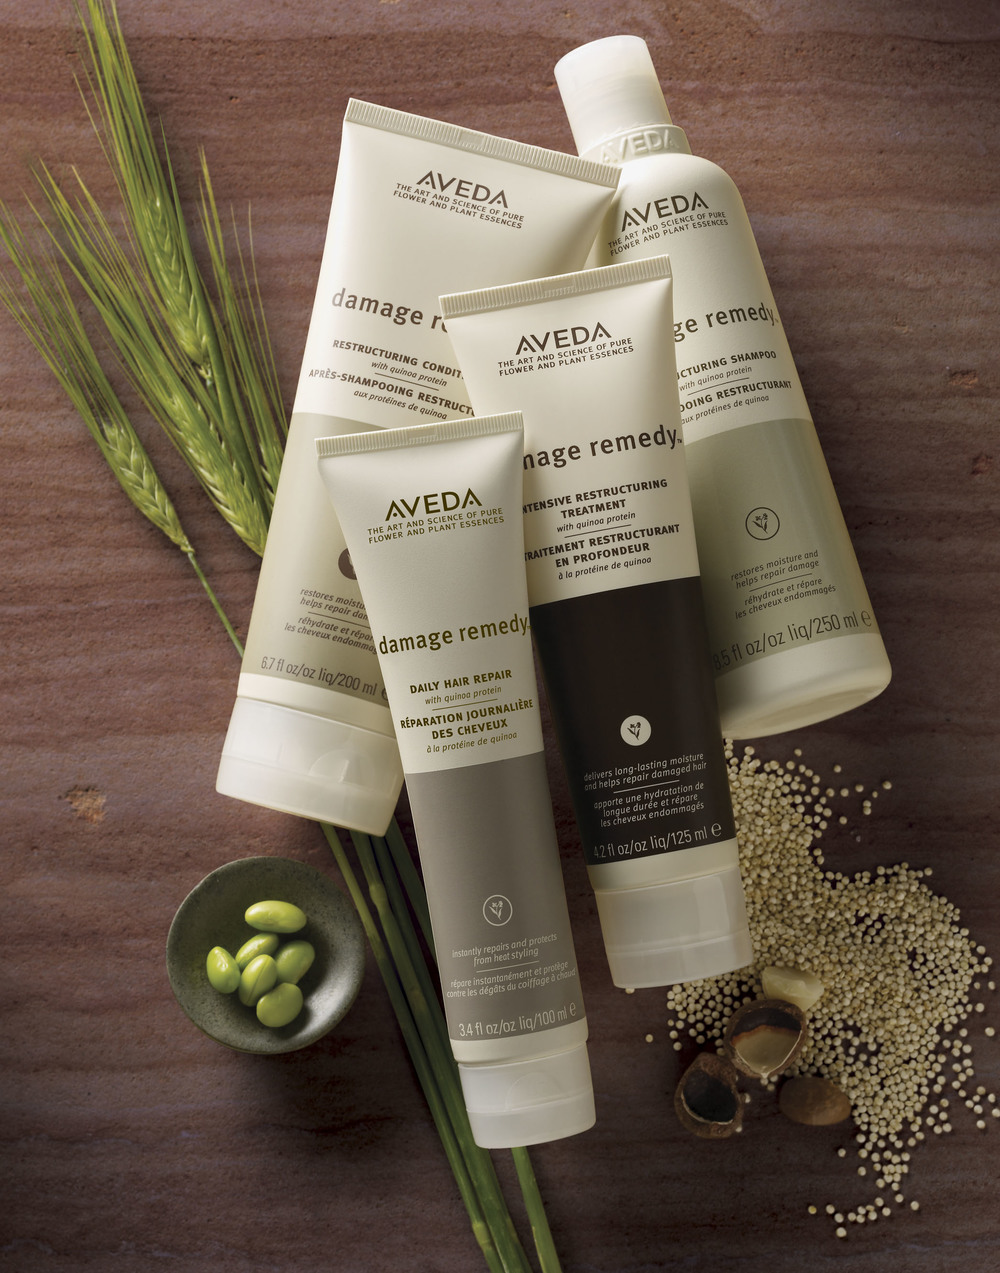 Aveda-Products-3.jpg